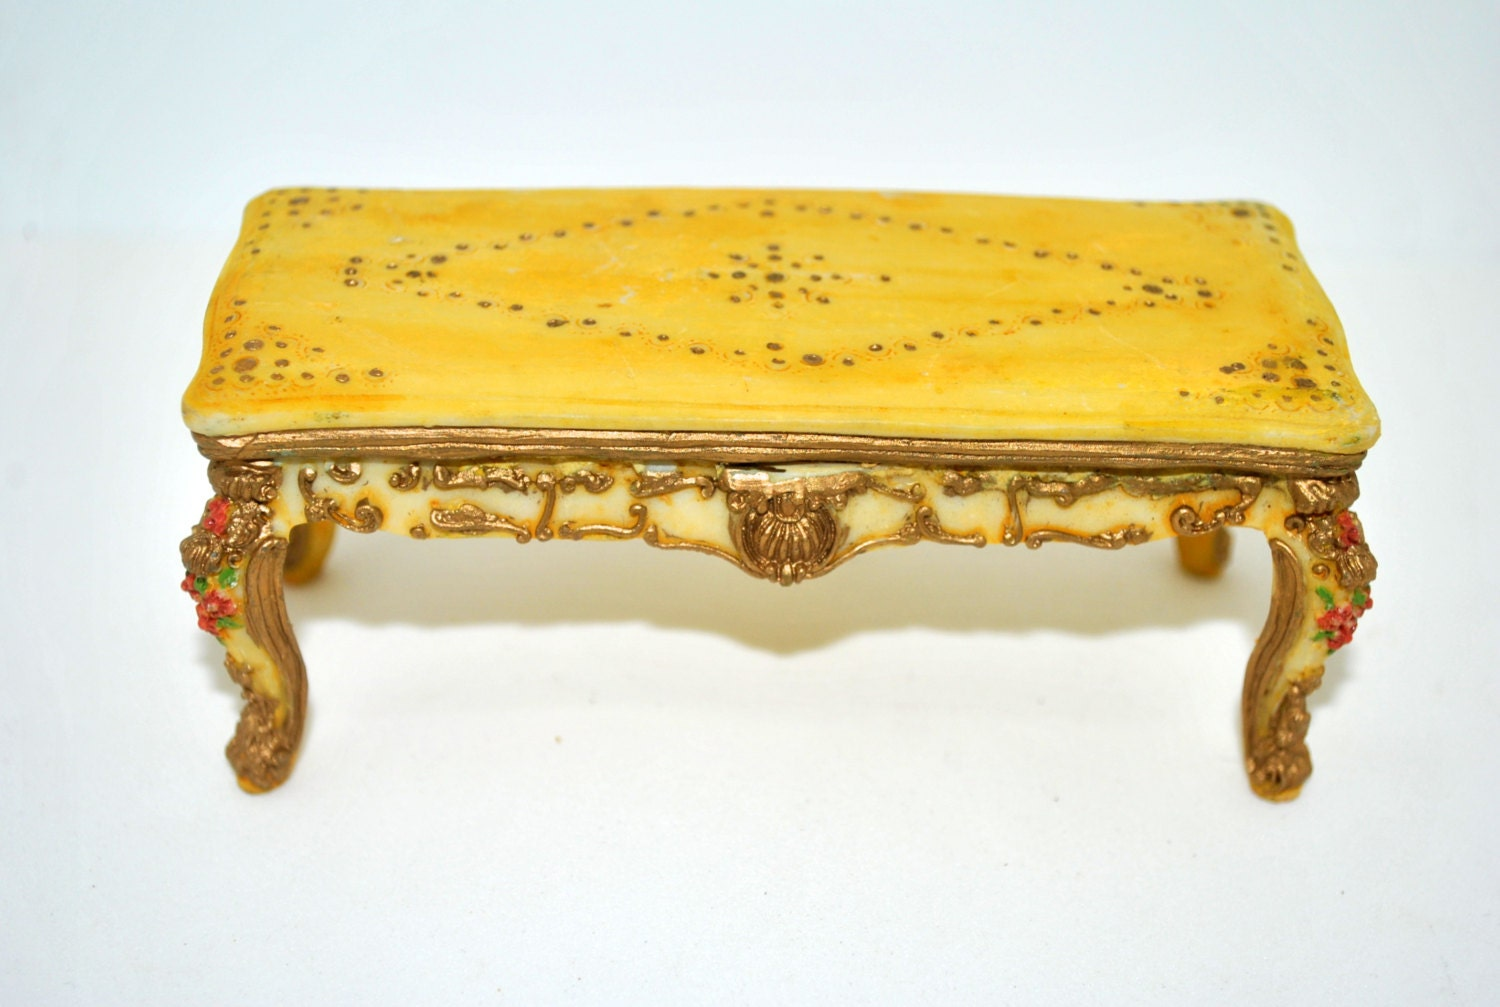 Vintage rococo doll house furniture dining room table baroque for Plastic baroque furniture